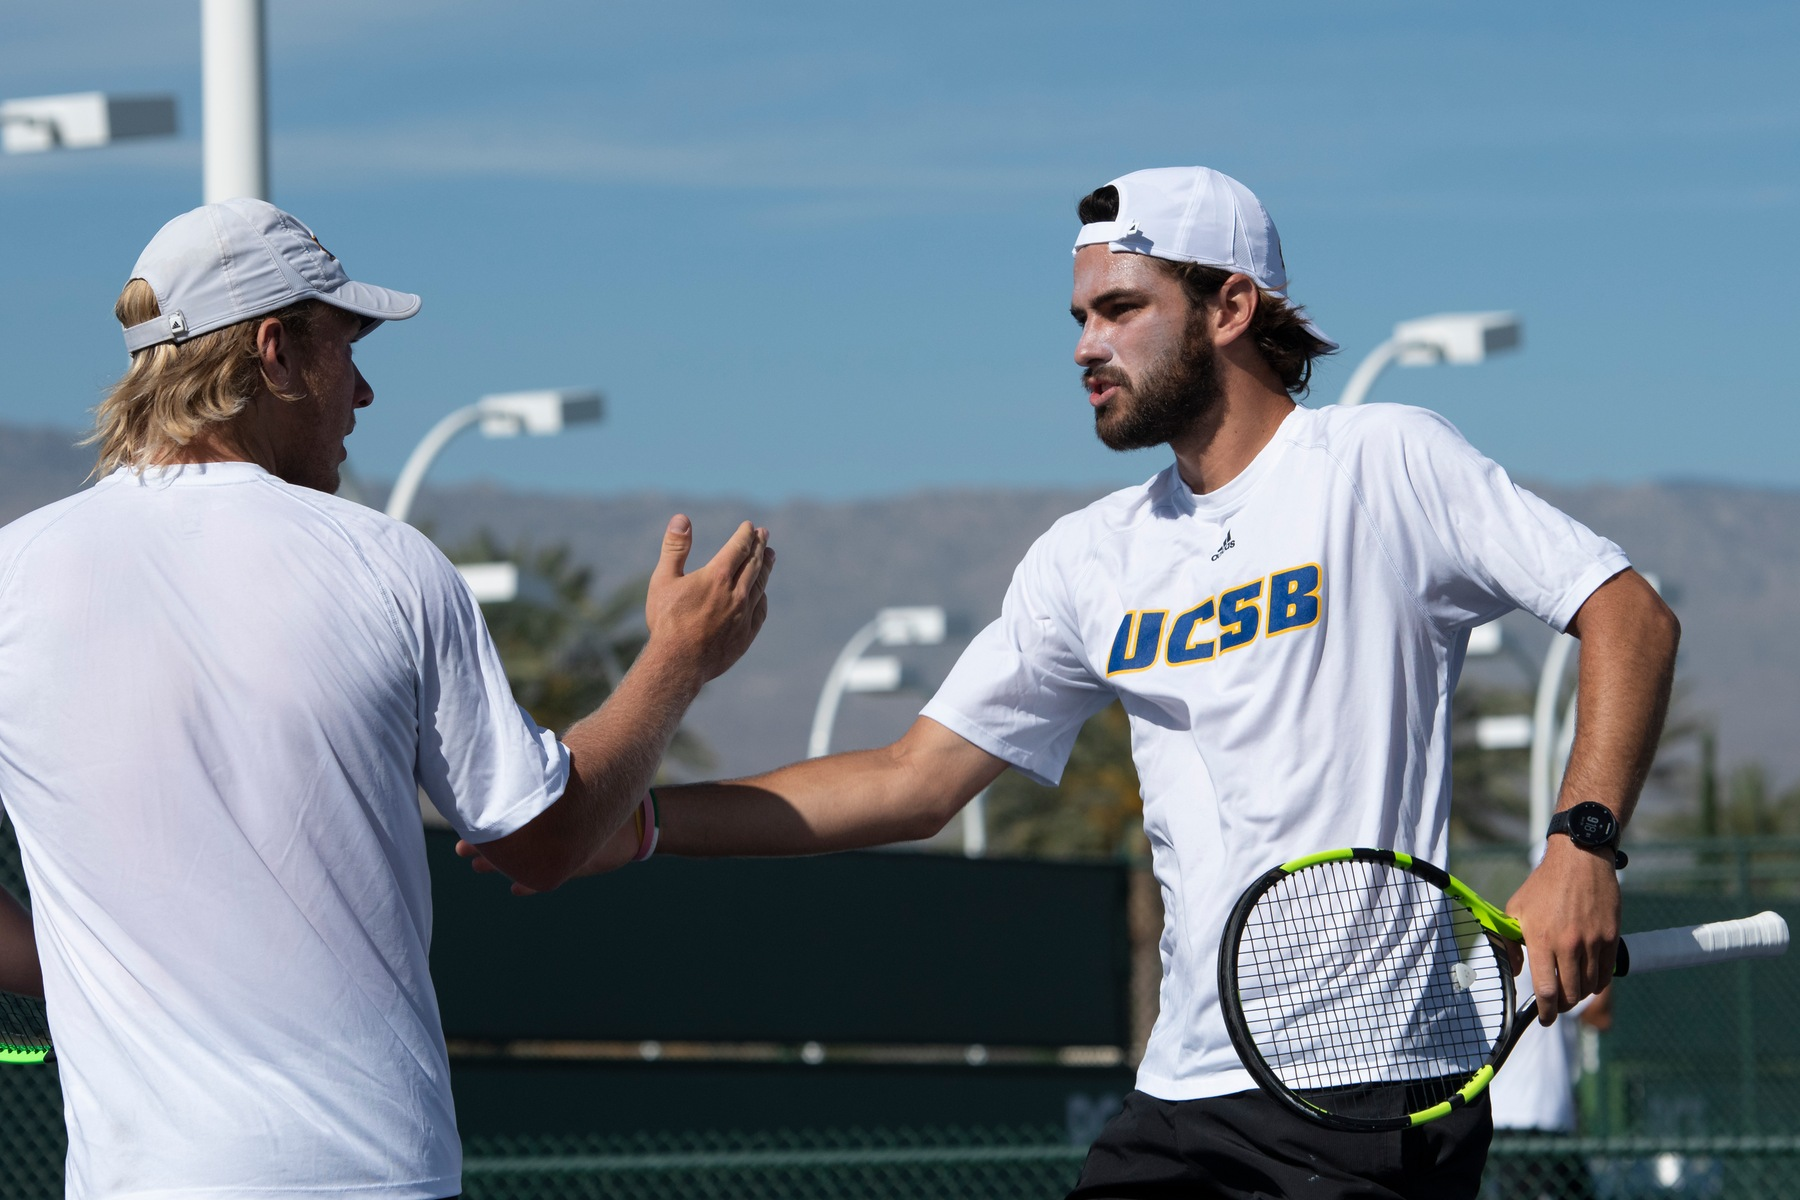 Guillin, Holm and Moreno de Alboran set for NCAA Singles and Doubles Championships